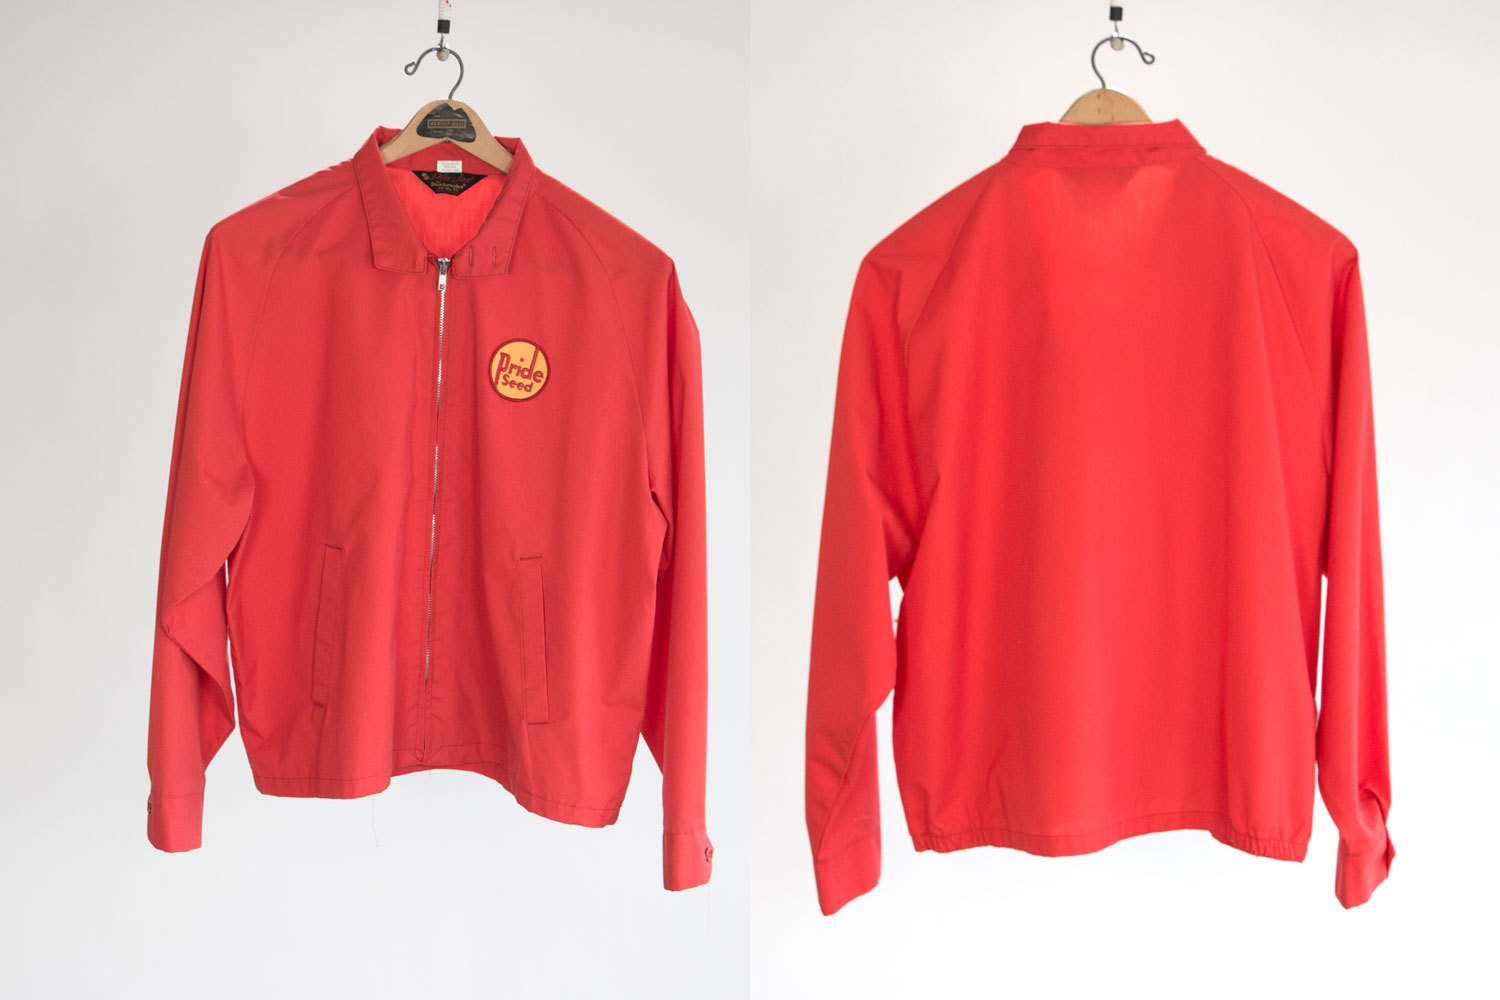 Vintage 1950's PRIDE SEED Uniform Jacket // Sz XL 48-50 //  Red,  Pla-Jac // Rockabilly // Indie // Hipster // Country Western // American